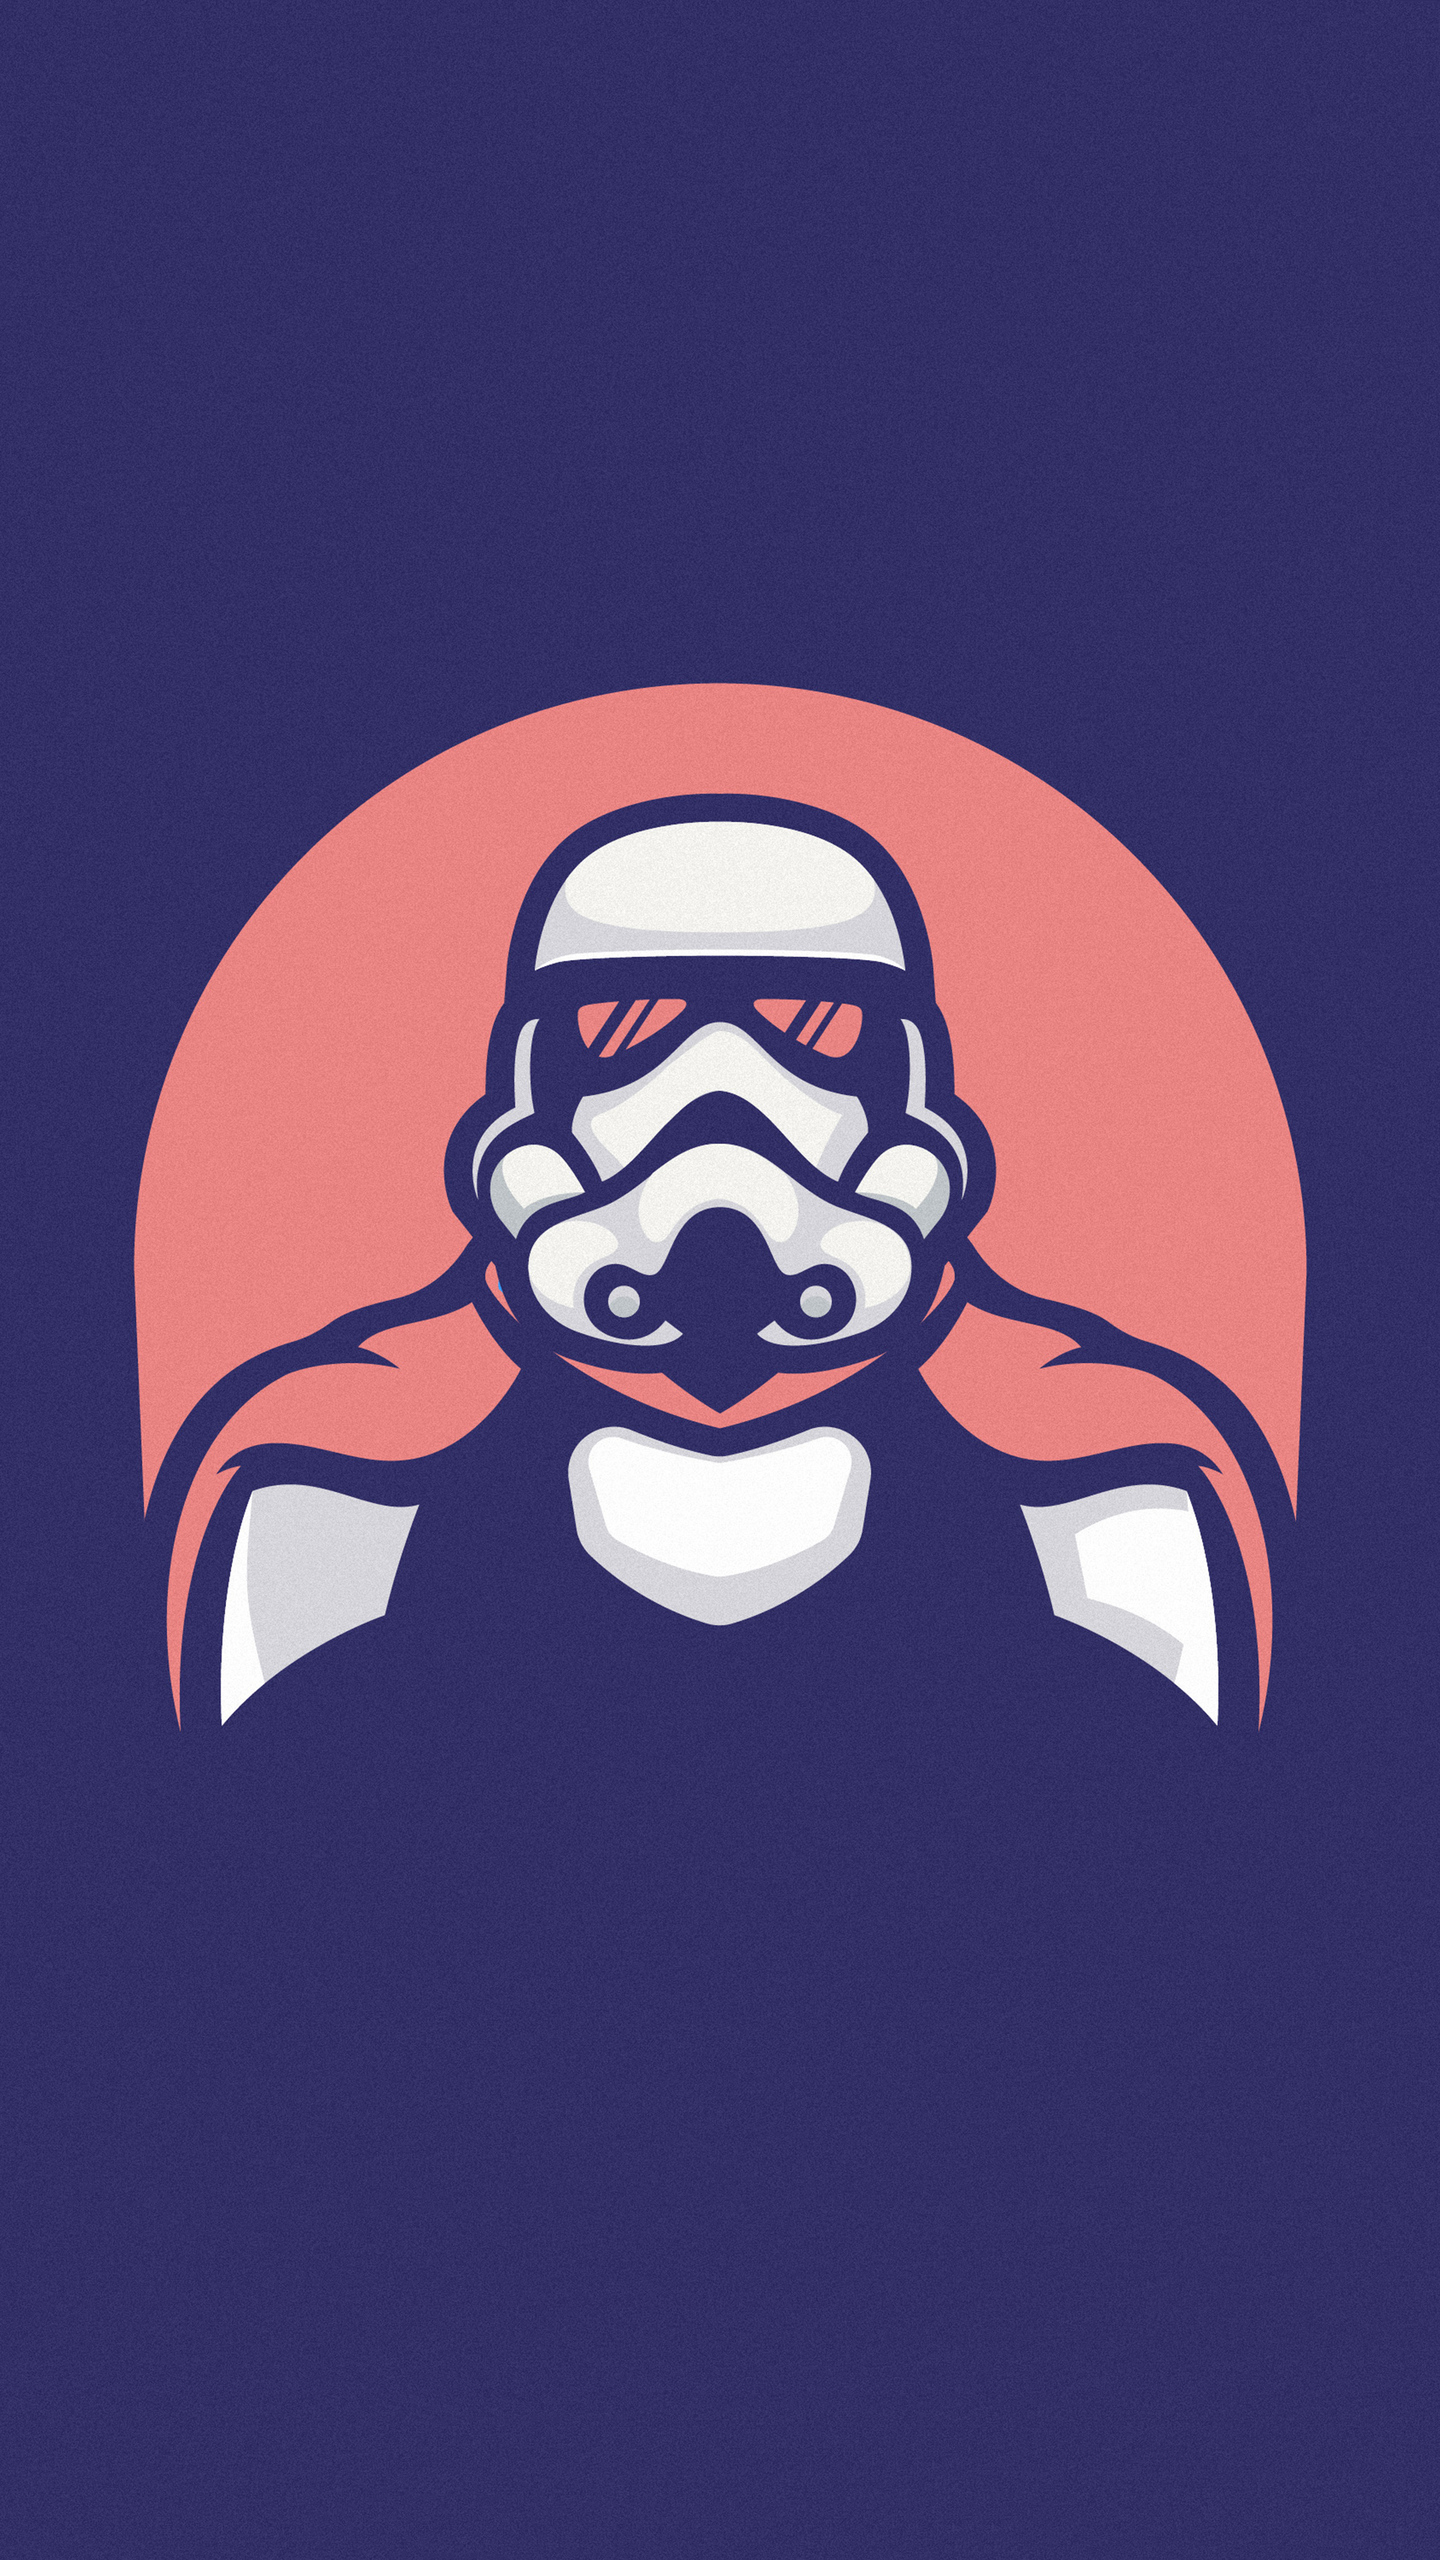 1440x2560 Star Wars Minimalist 4k Samsung Galaxy S6 S7 Google Pixel Xl Nexus 6 6p Lg G5 Hd 4k Wallpapers Images Backgrounds Photos And Pictures